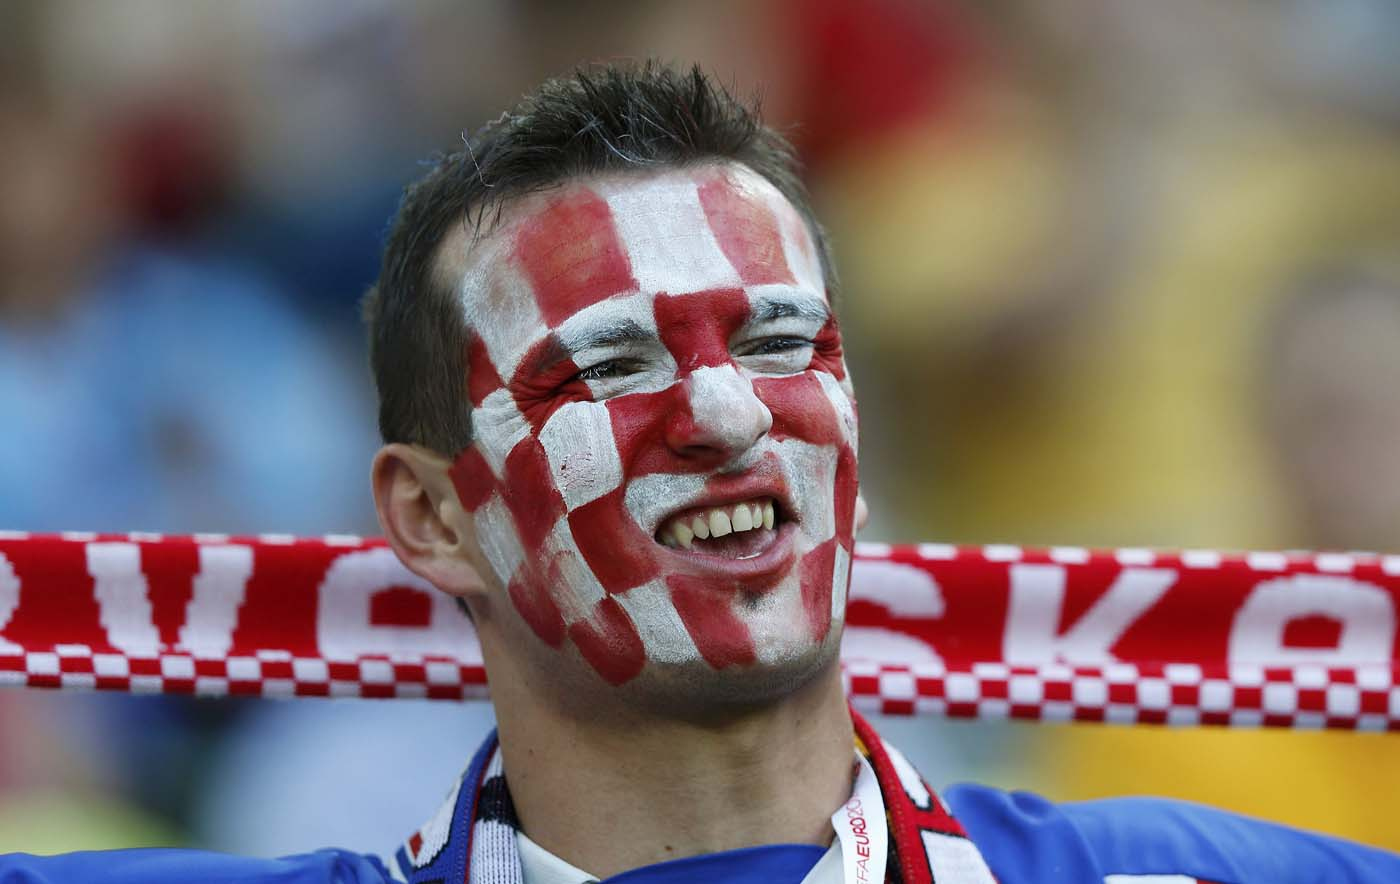 A fan of Croatia cheers before their Group C Euro 2012 soccer match against Spain at the PGE Arena in Gdansk June 18, 2012. (Thomas Bohlen/Reuters)